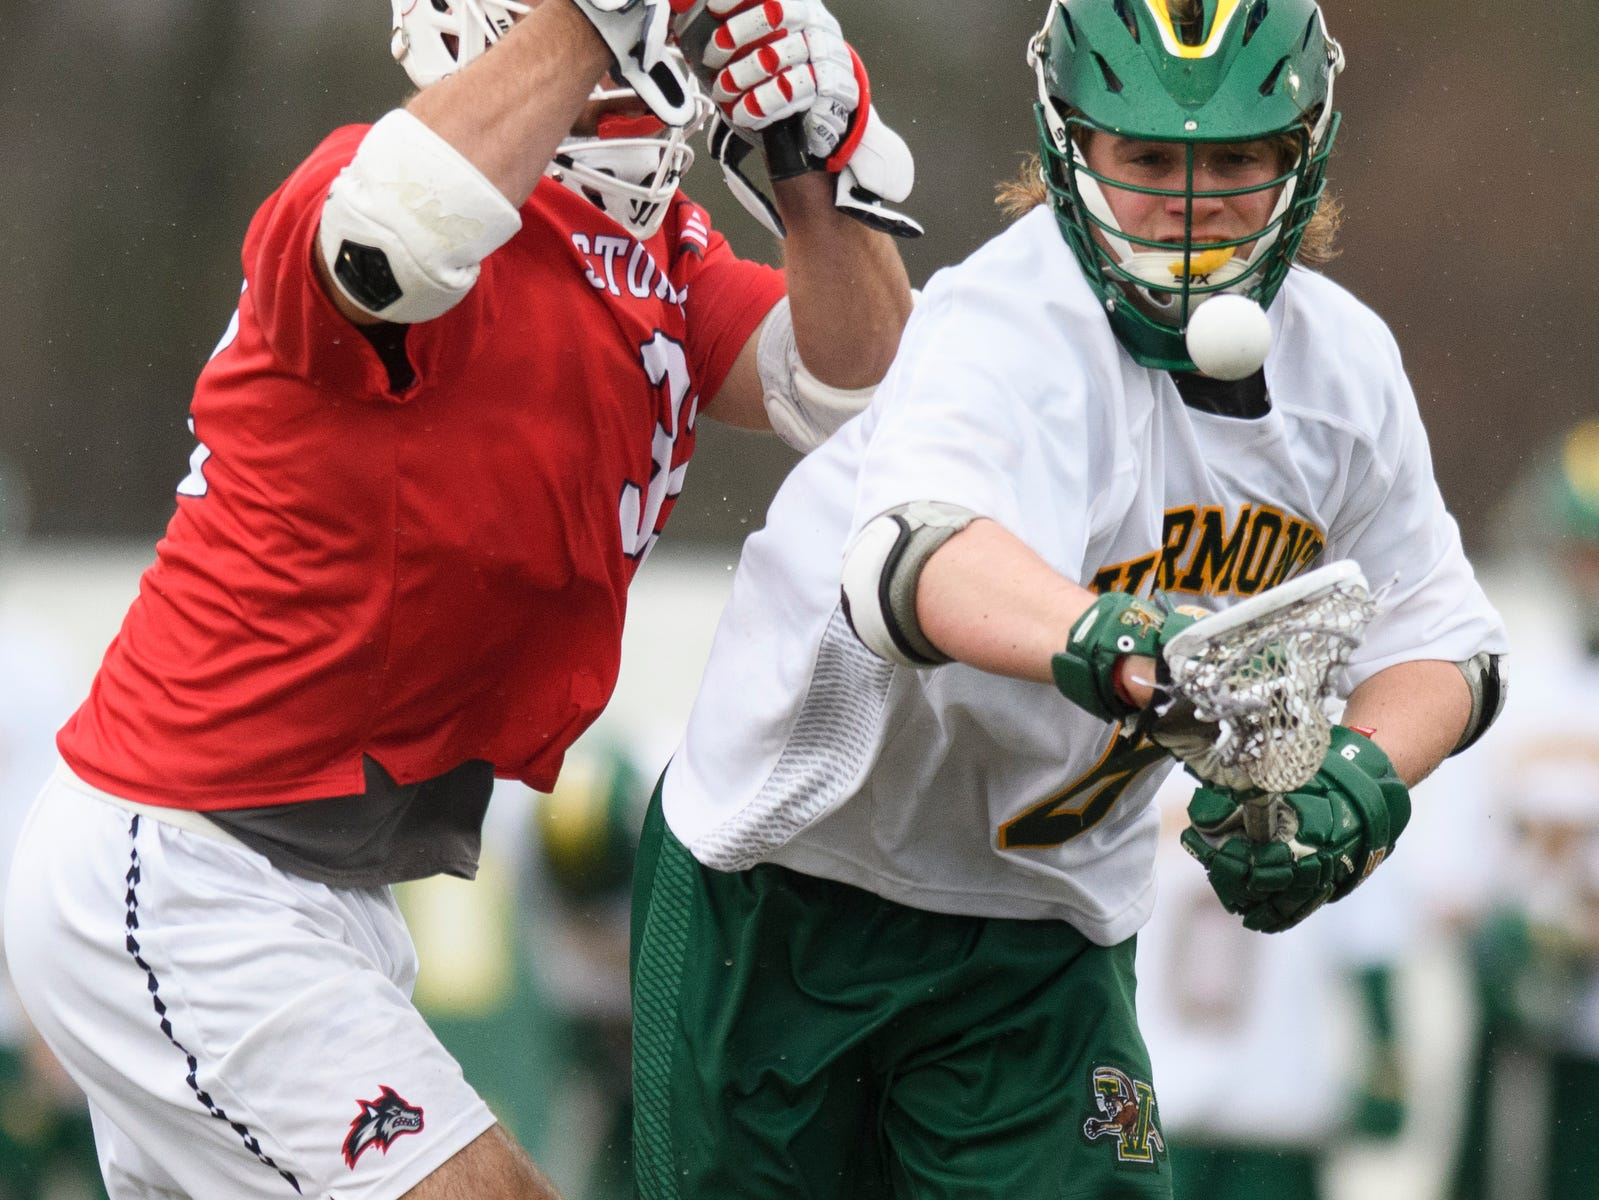 Vermont's Alex Semler (6) picks up the loose ball during the men's lacrosse game between the Stony Brook Sea Wolves and the Vermont Catamounts at Virtue Field on Saturday afternoon April 20, 2019 in Burlington, Vermont.